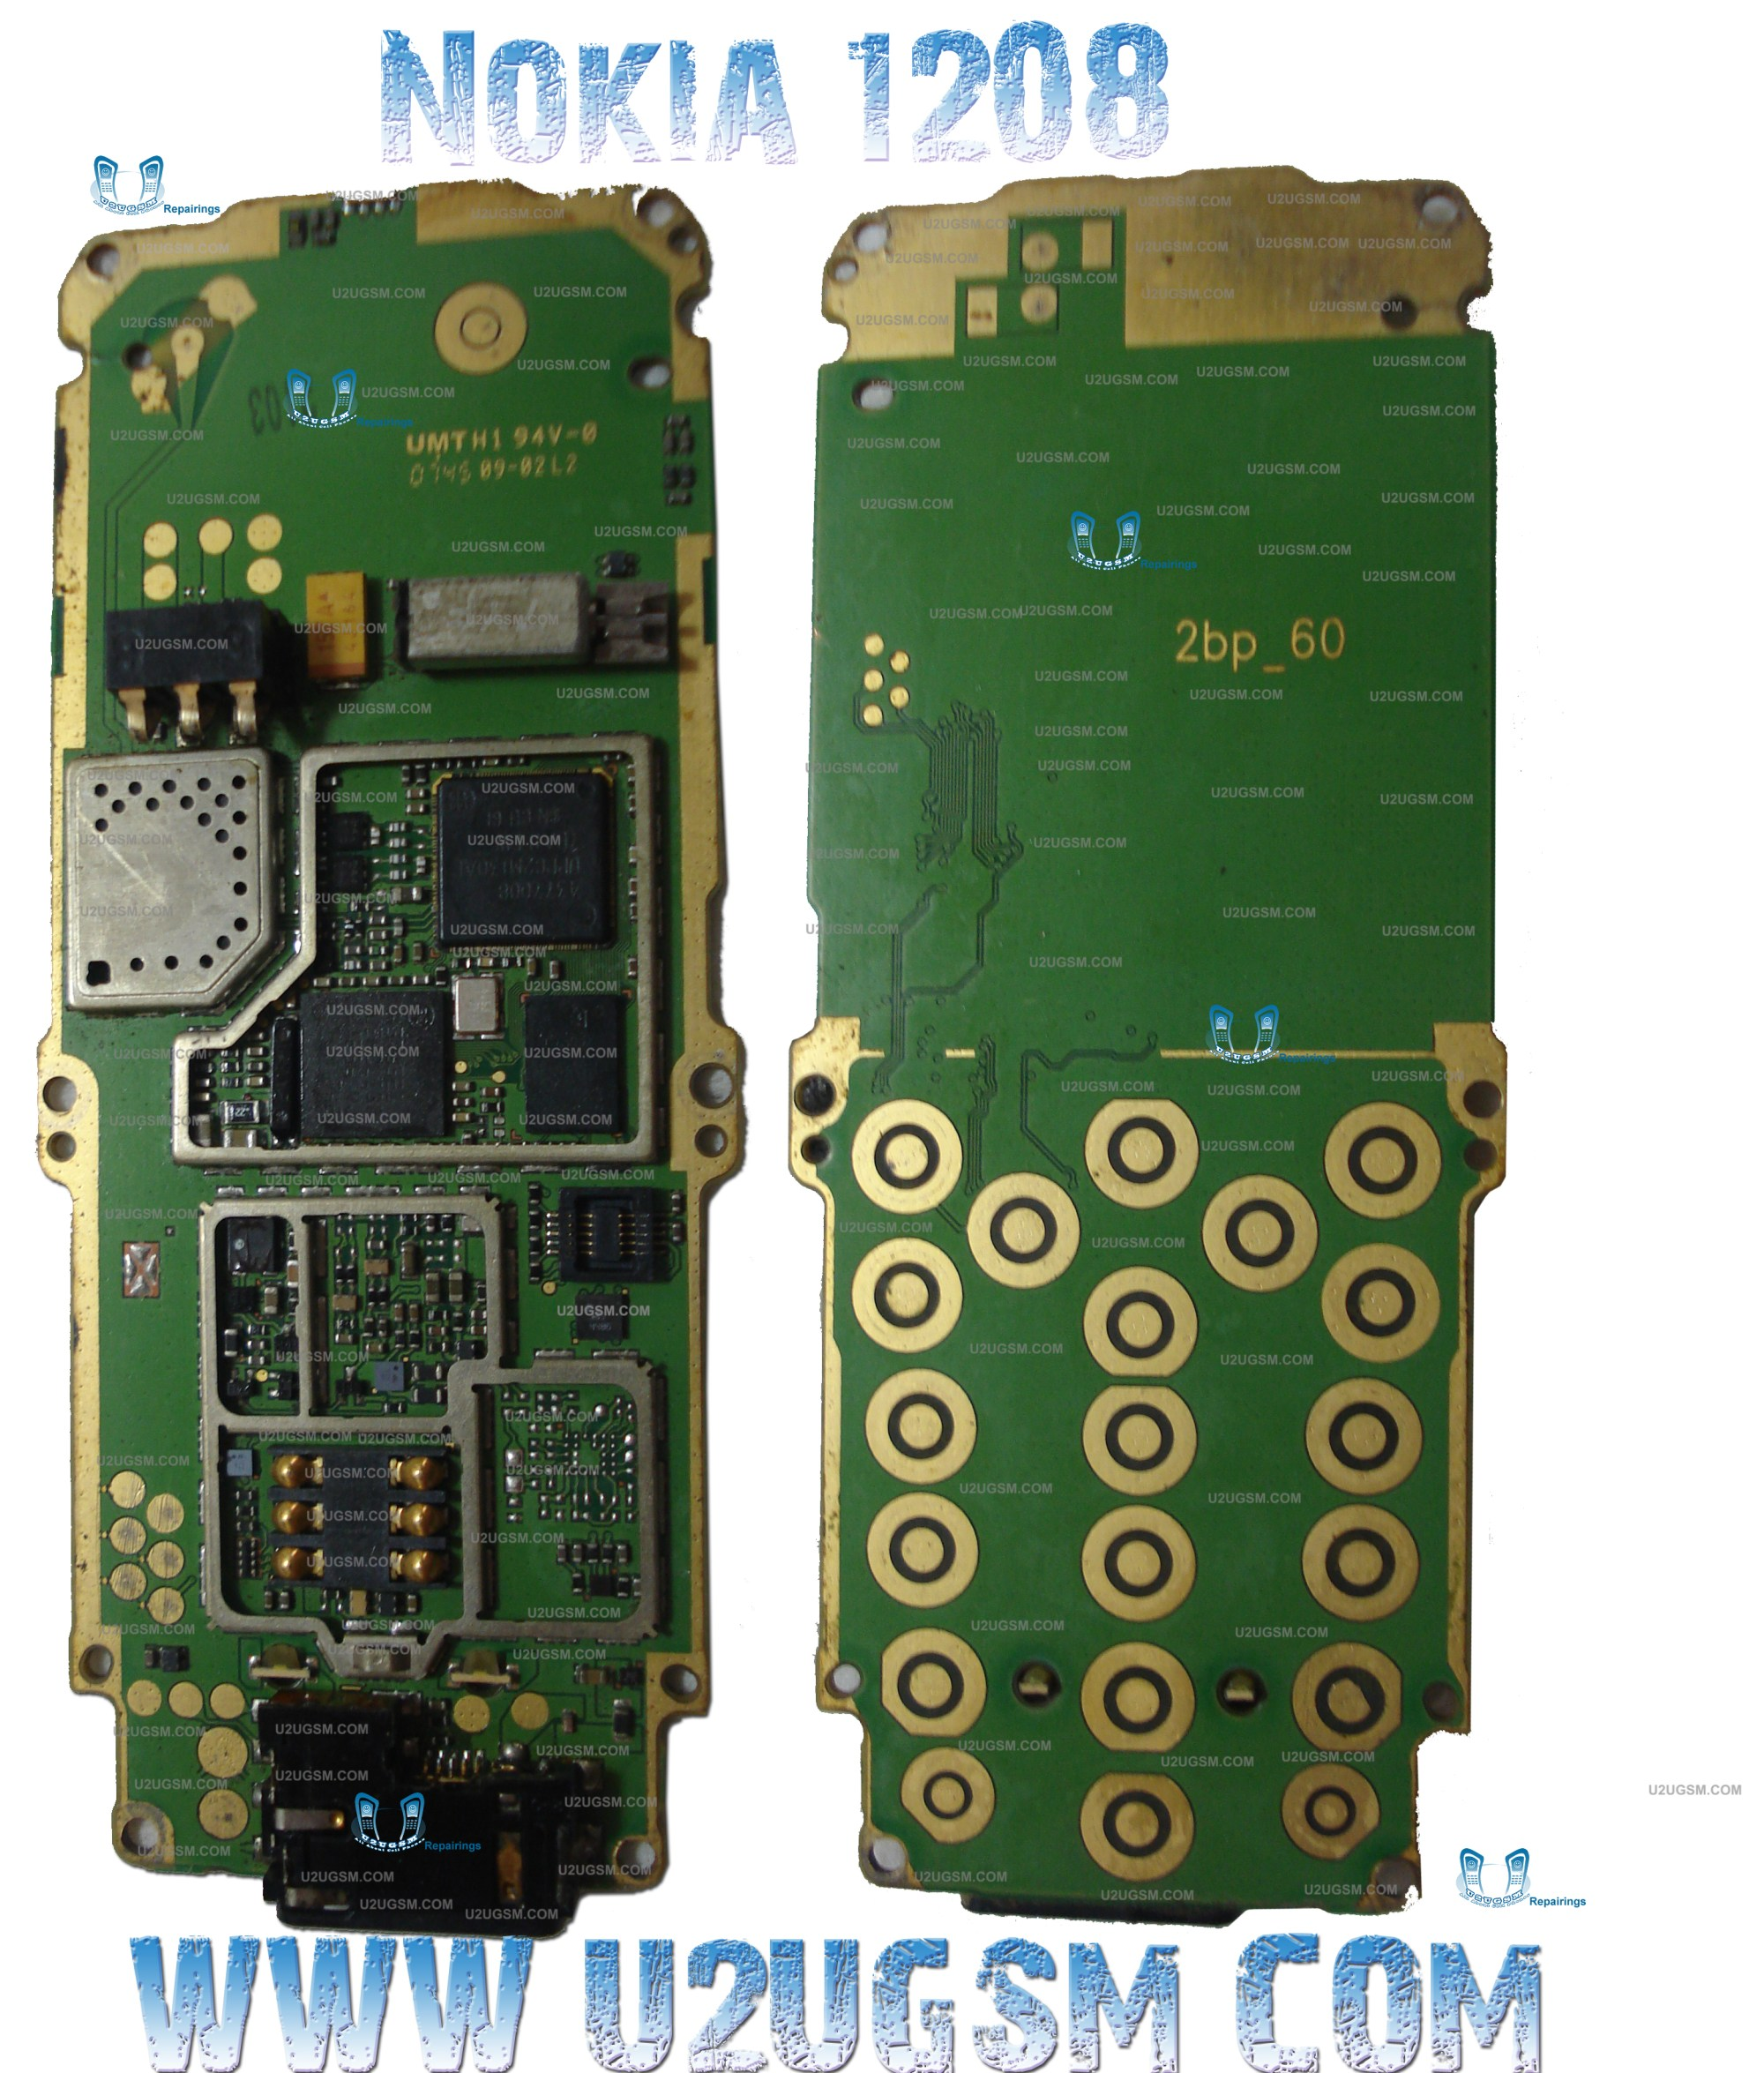 hight resolution of nokia 1208 1209 full pcb diagram mother board mobile repairing download high resolution diagram of nokia